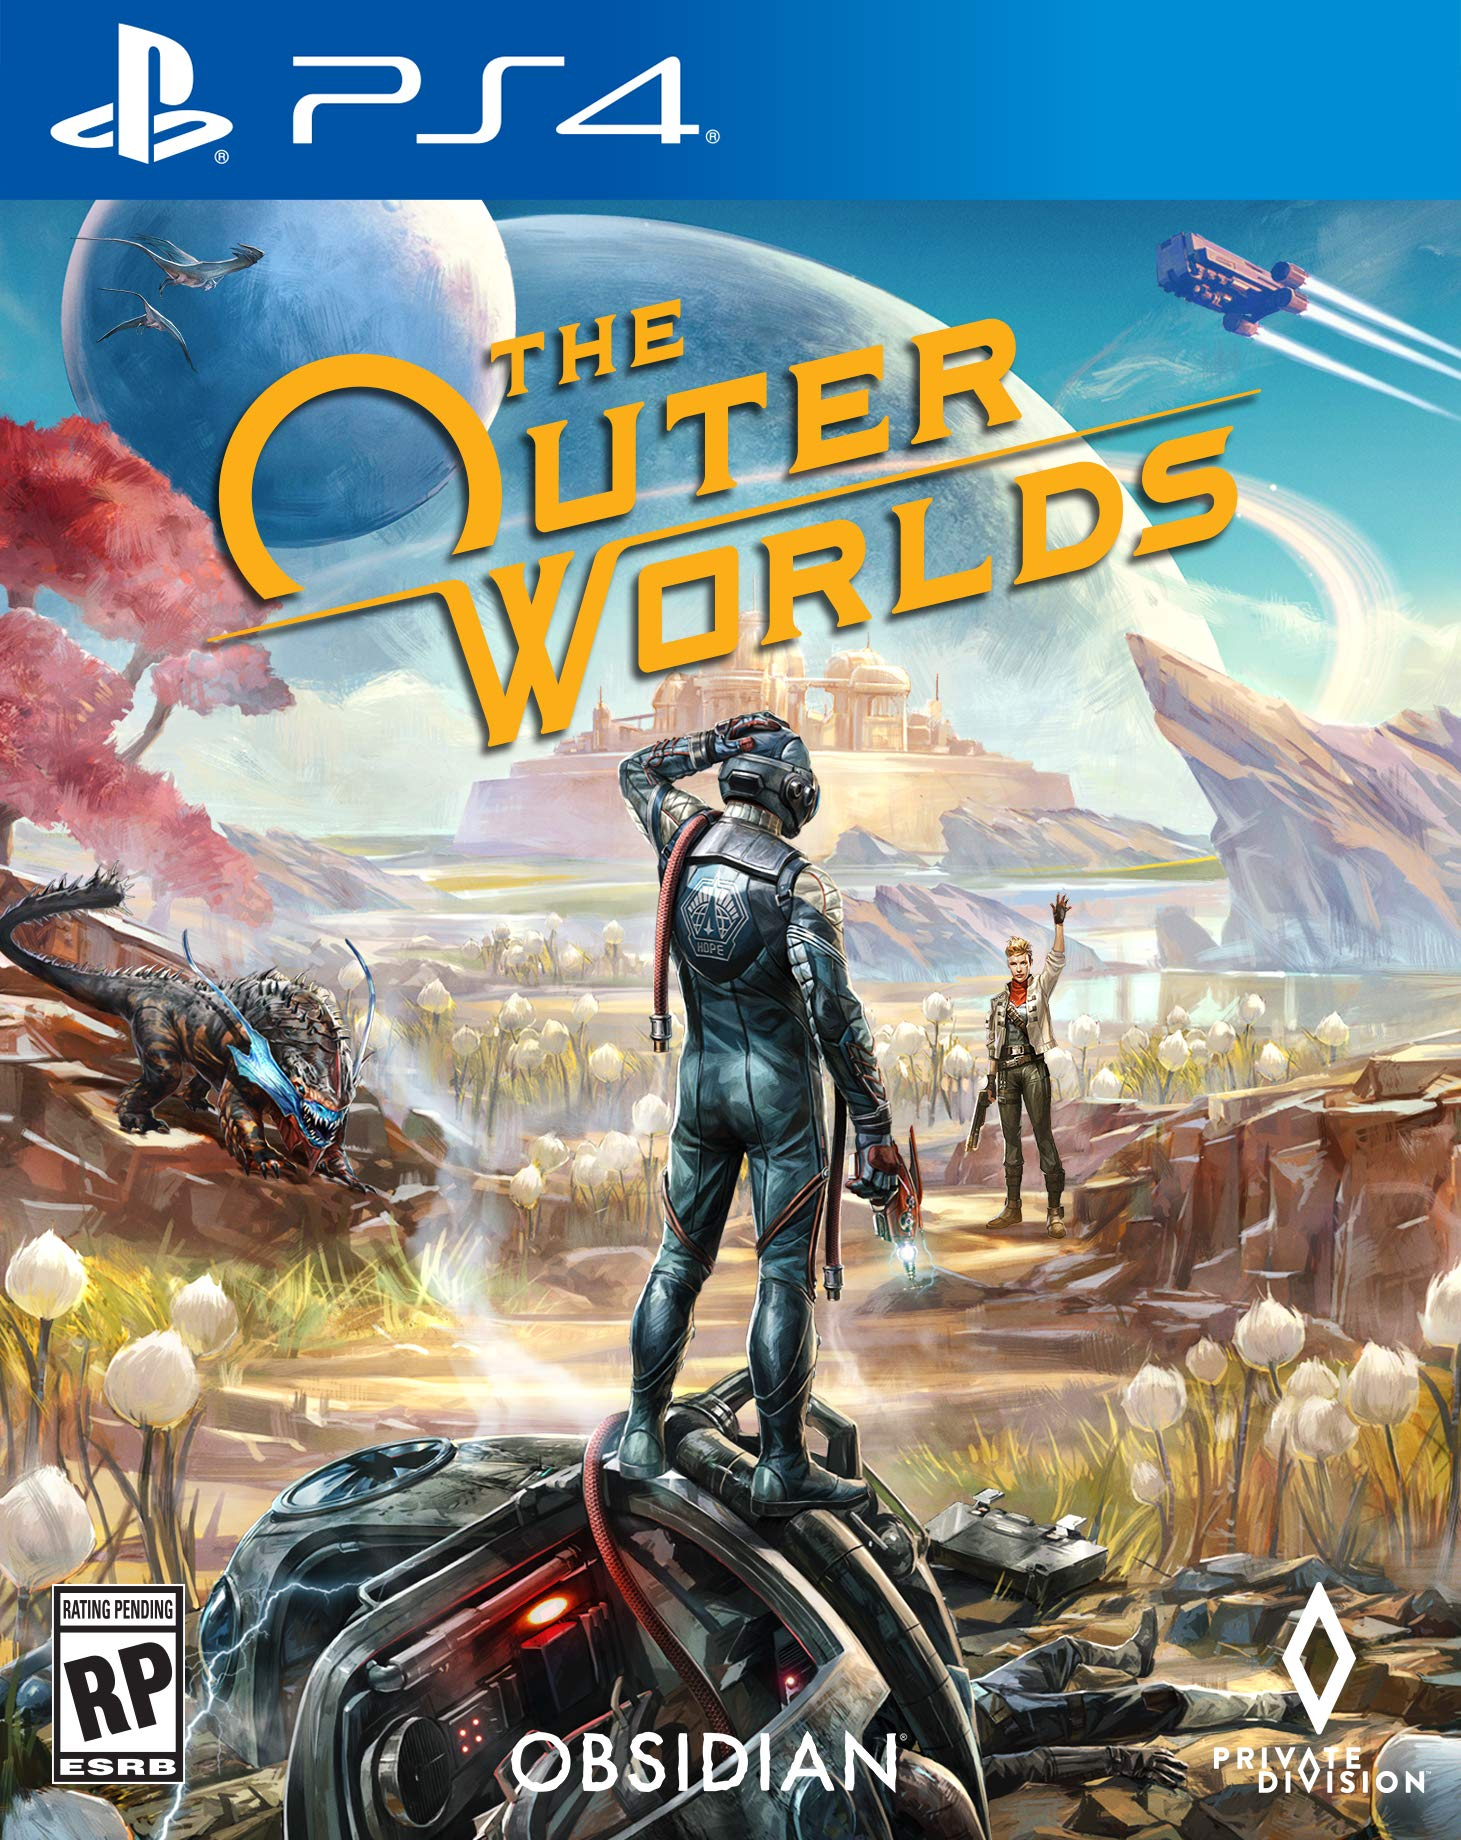 The Outer Worlds - PlayStation 4 by Take2 Interactive Software (Image #9)